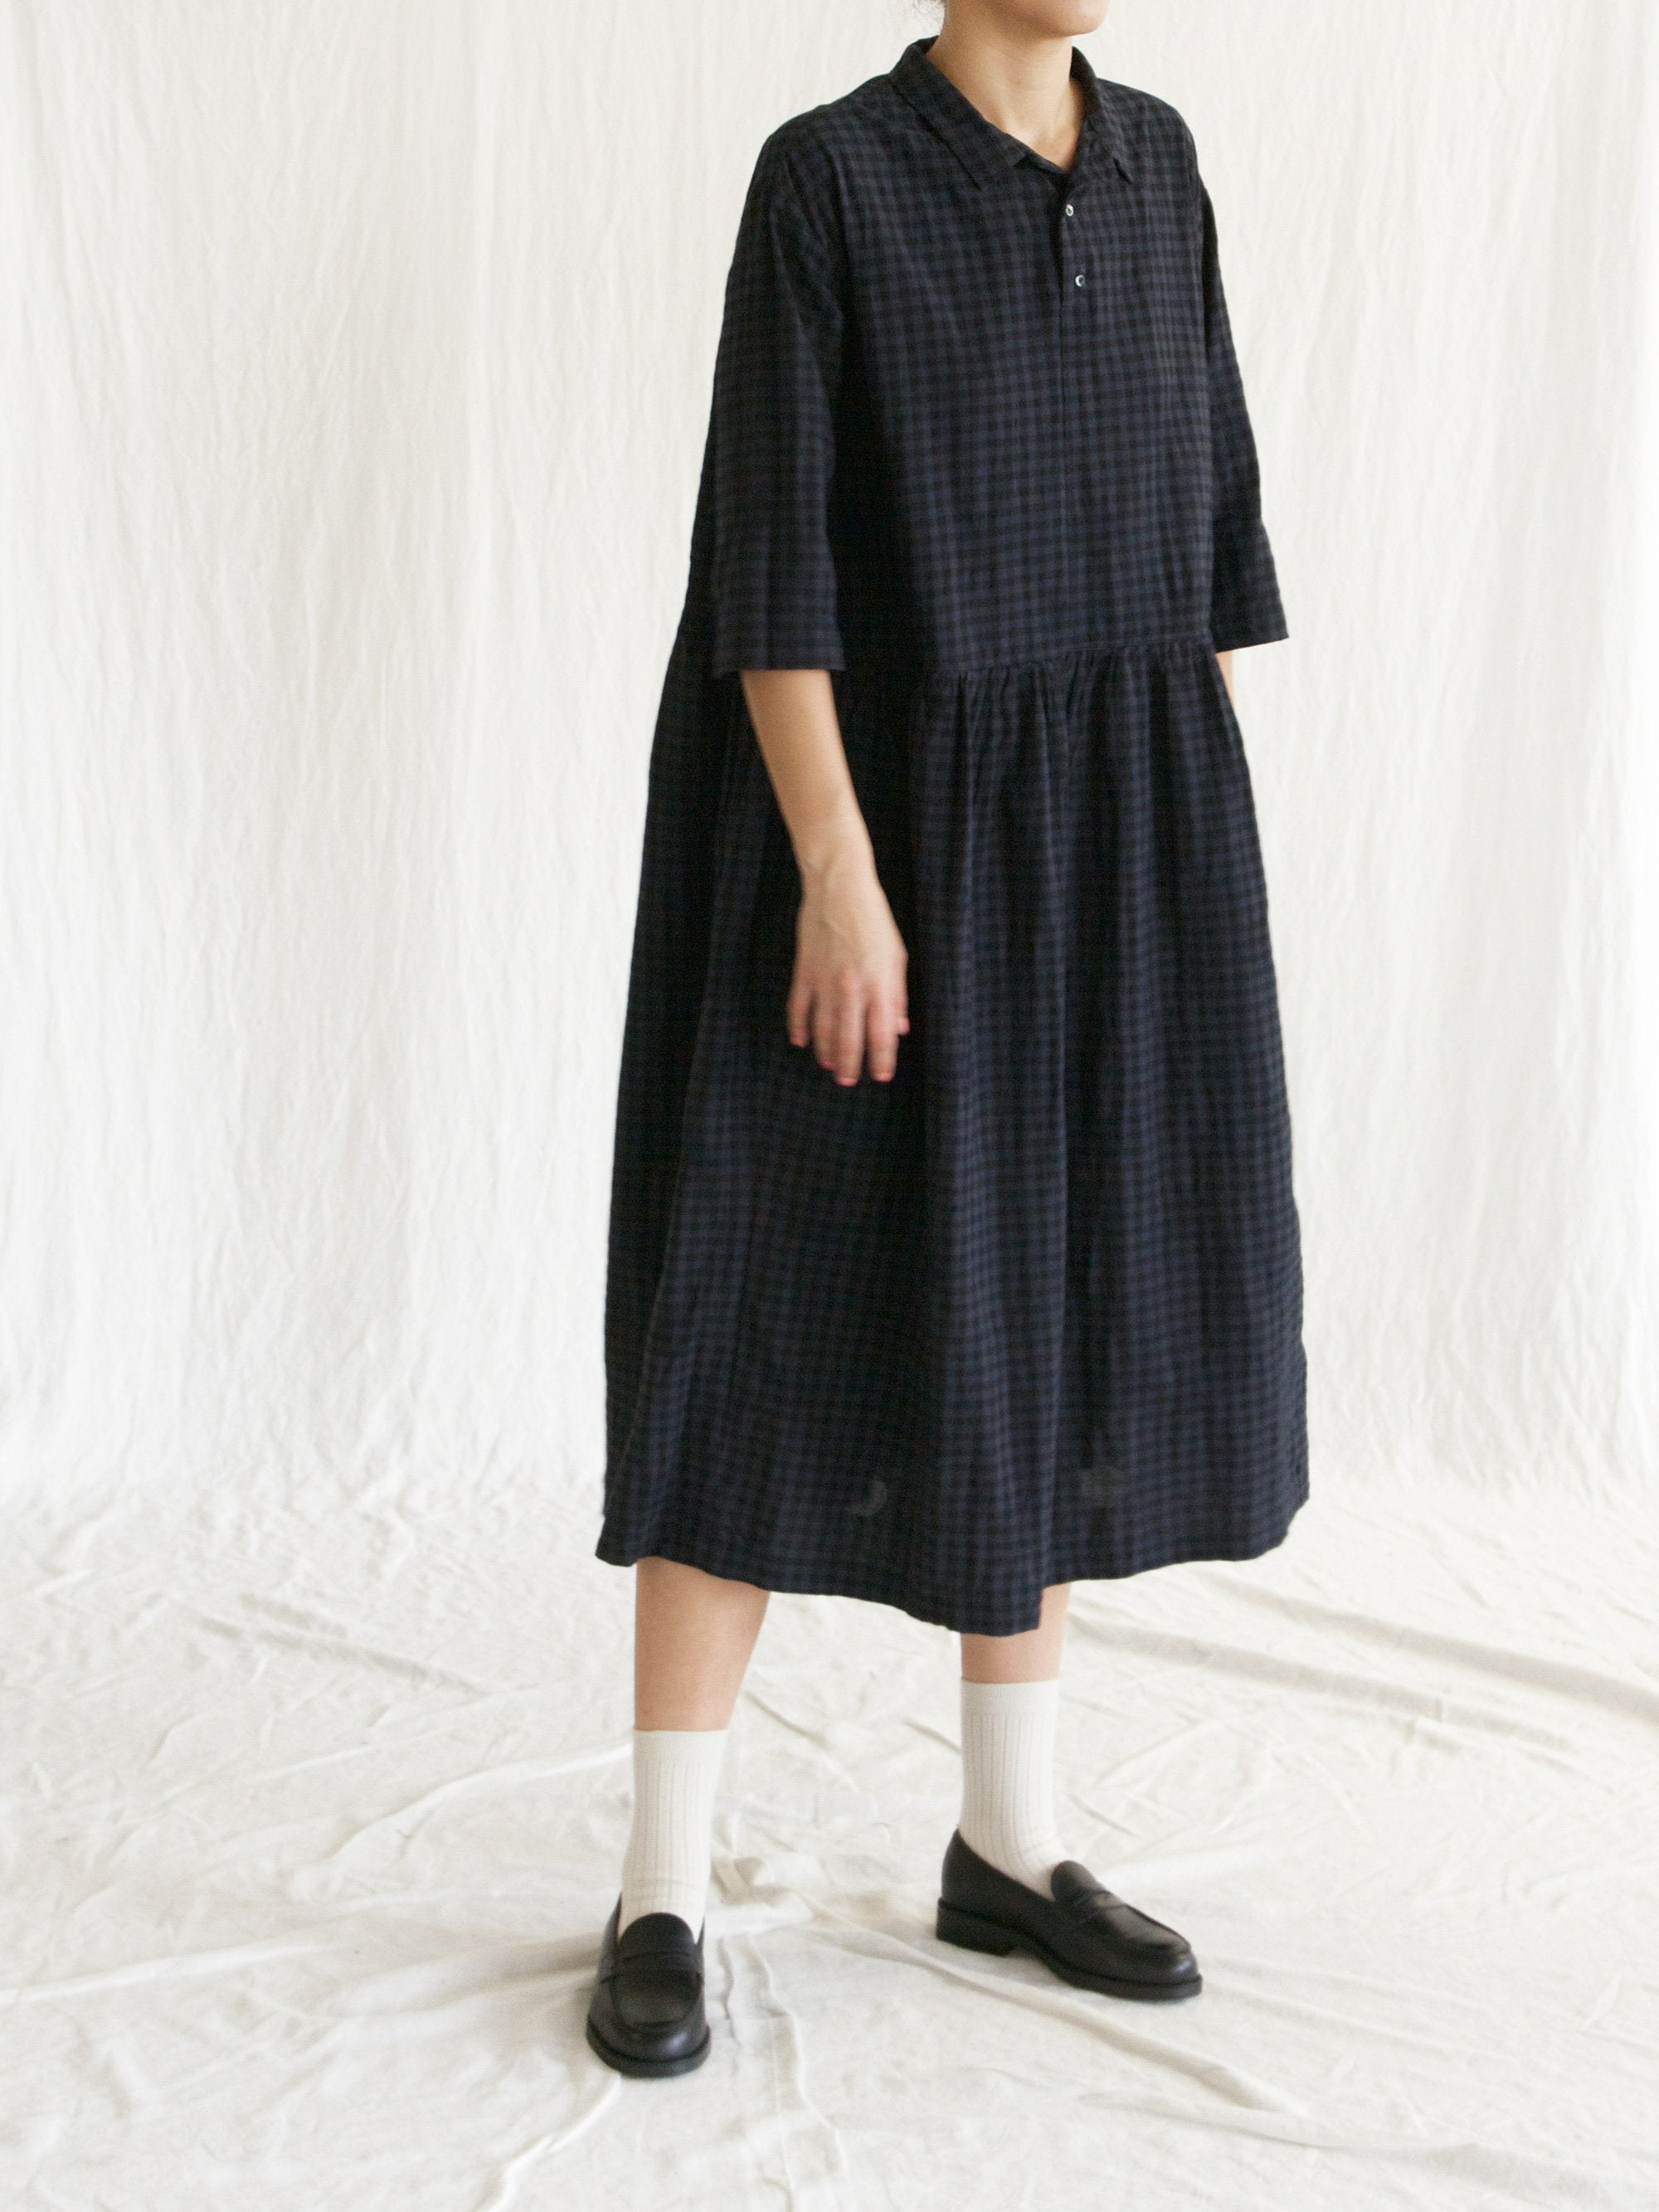 Gingham x Dot Jacquard Dress - Charcoal